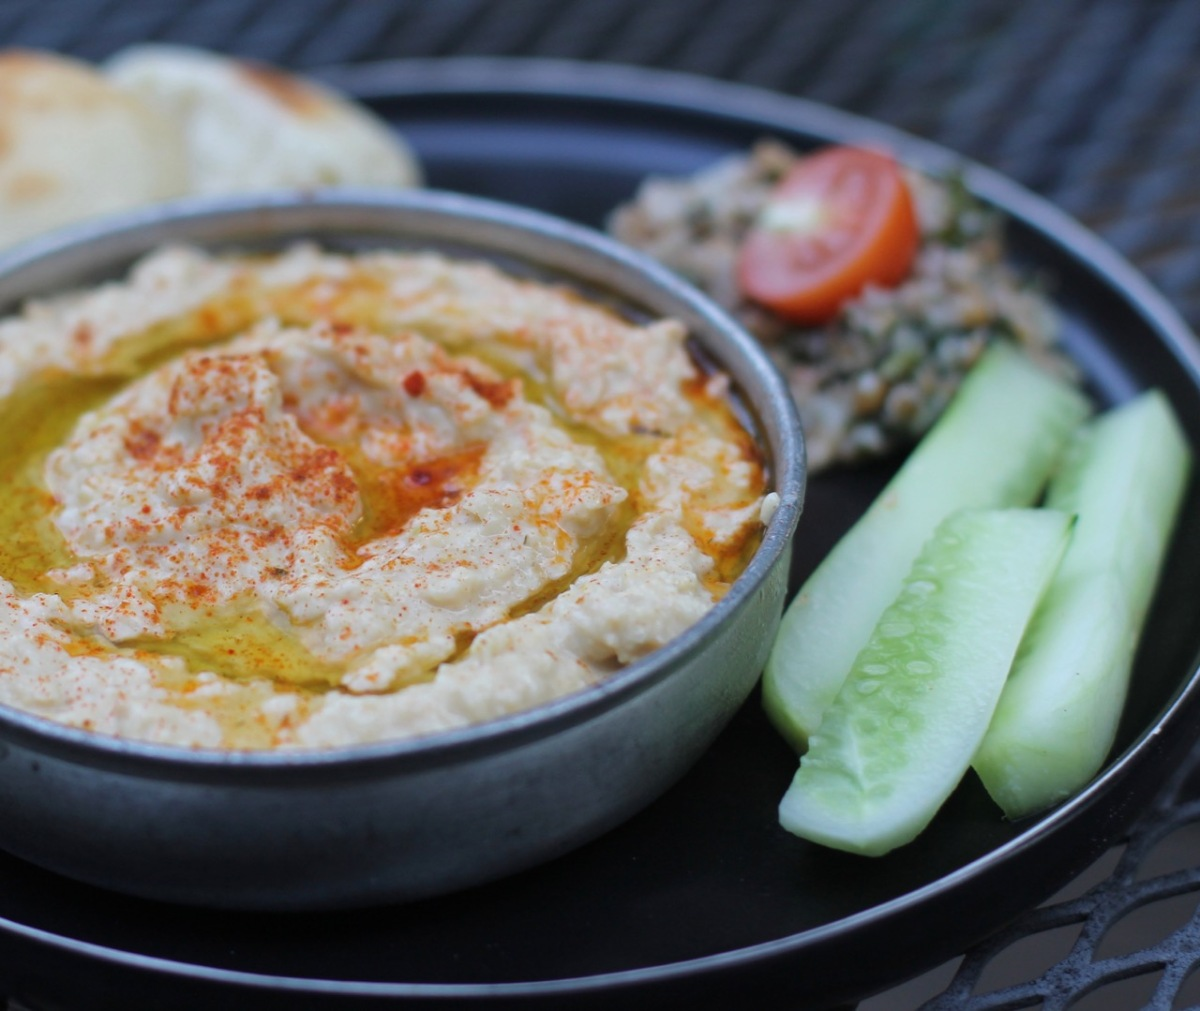 Middle Eastern hummus recipe with pita bread